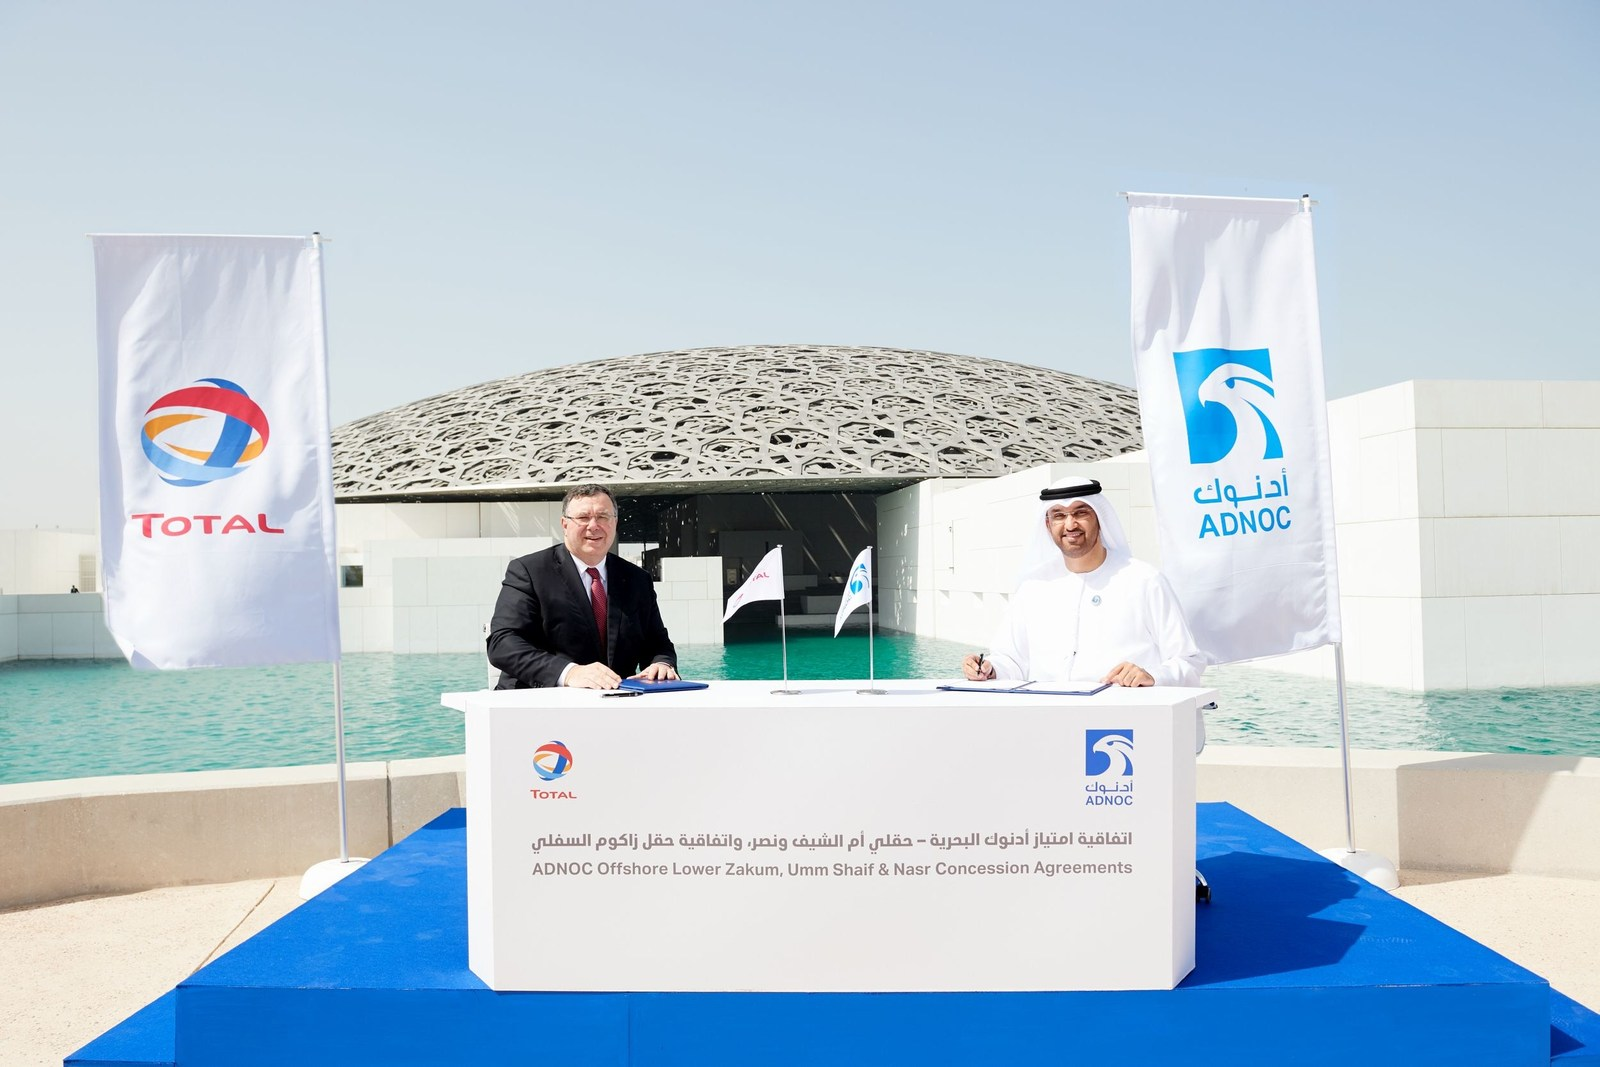 Abu Dhabi signs $1.45 billion offshore deal with French Total SA